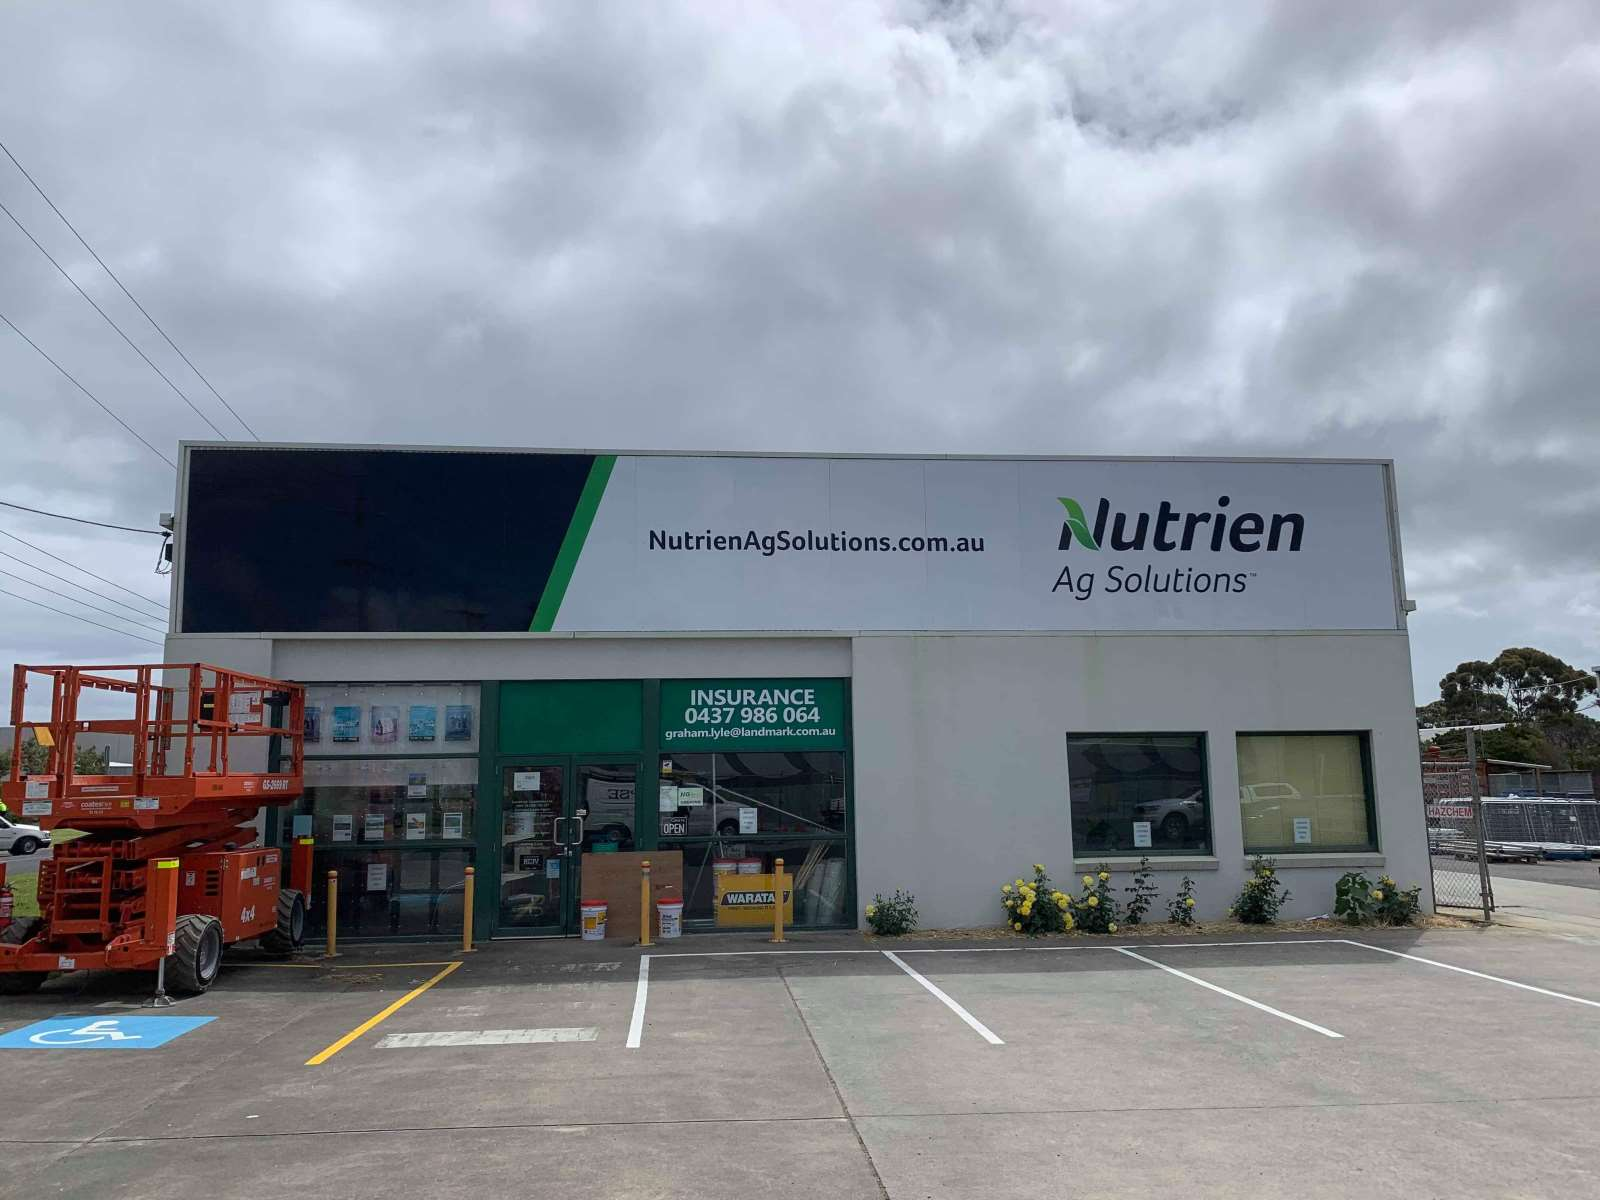 Nutrien Ag Solutions - Wonthaggi, VIC 3995 - (03) 5672 2512 | ShowMeLocal.com